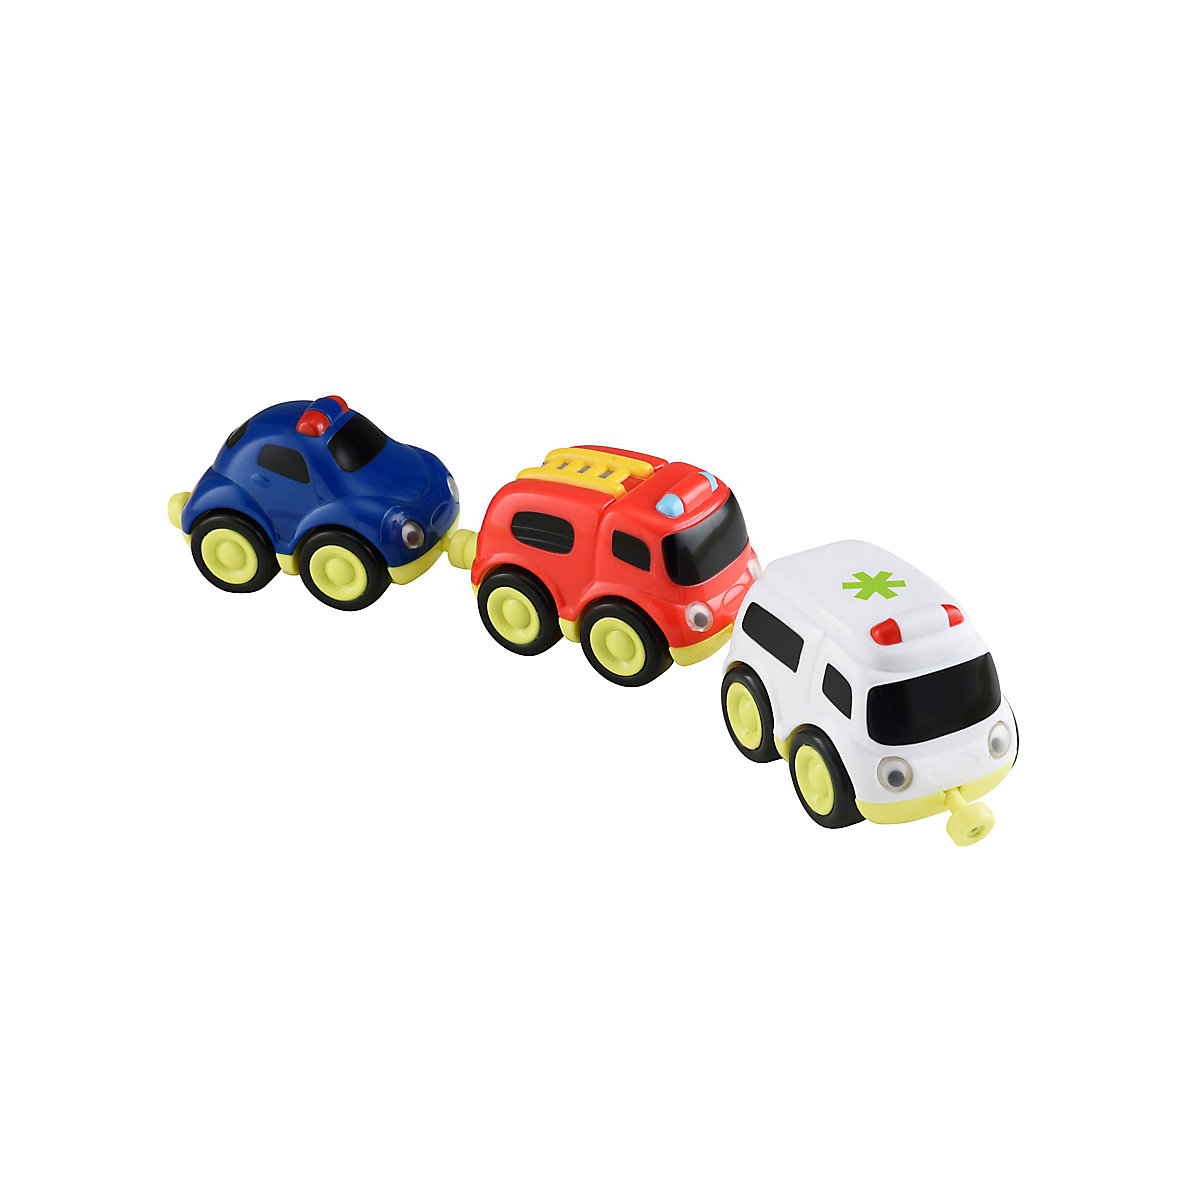 New ELC Boys/Girls Whizz World Emergency Vehicles Trio Set Toy From 12 months - Toy Gifts